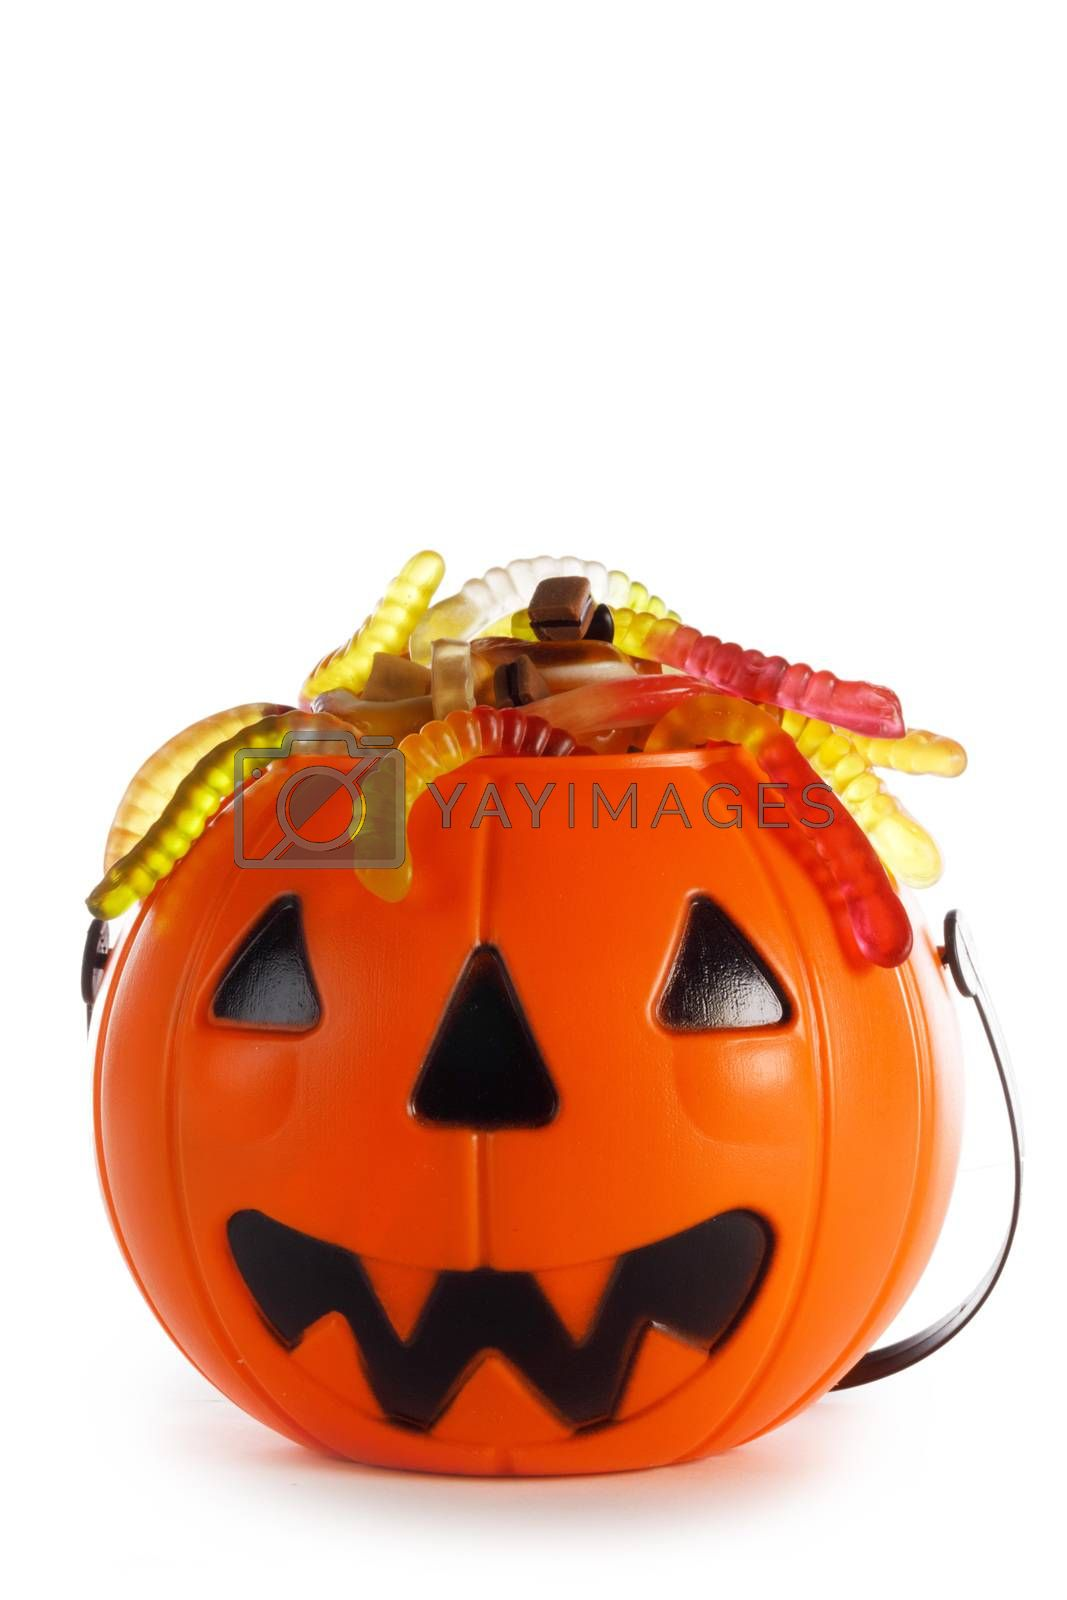 Halloween candies in Jack-O-Lantern bag isolated on white background